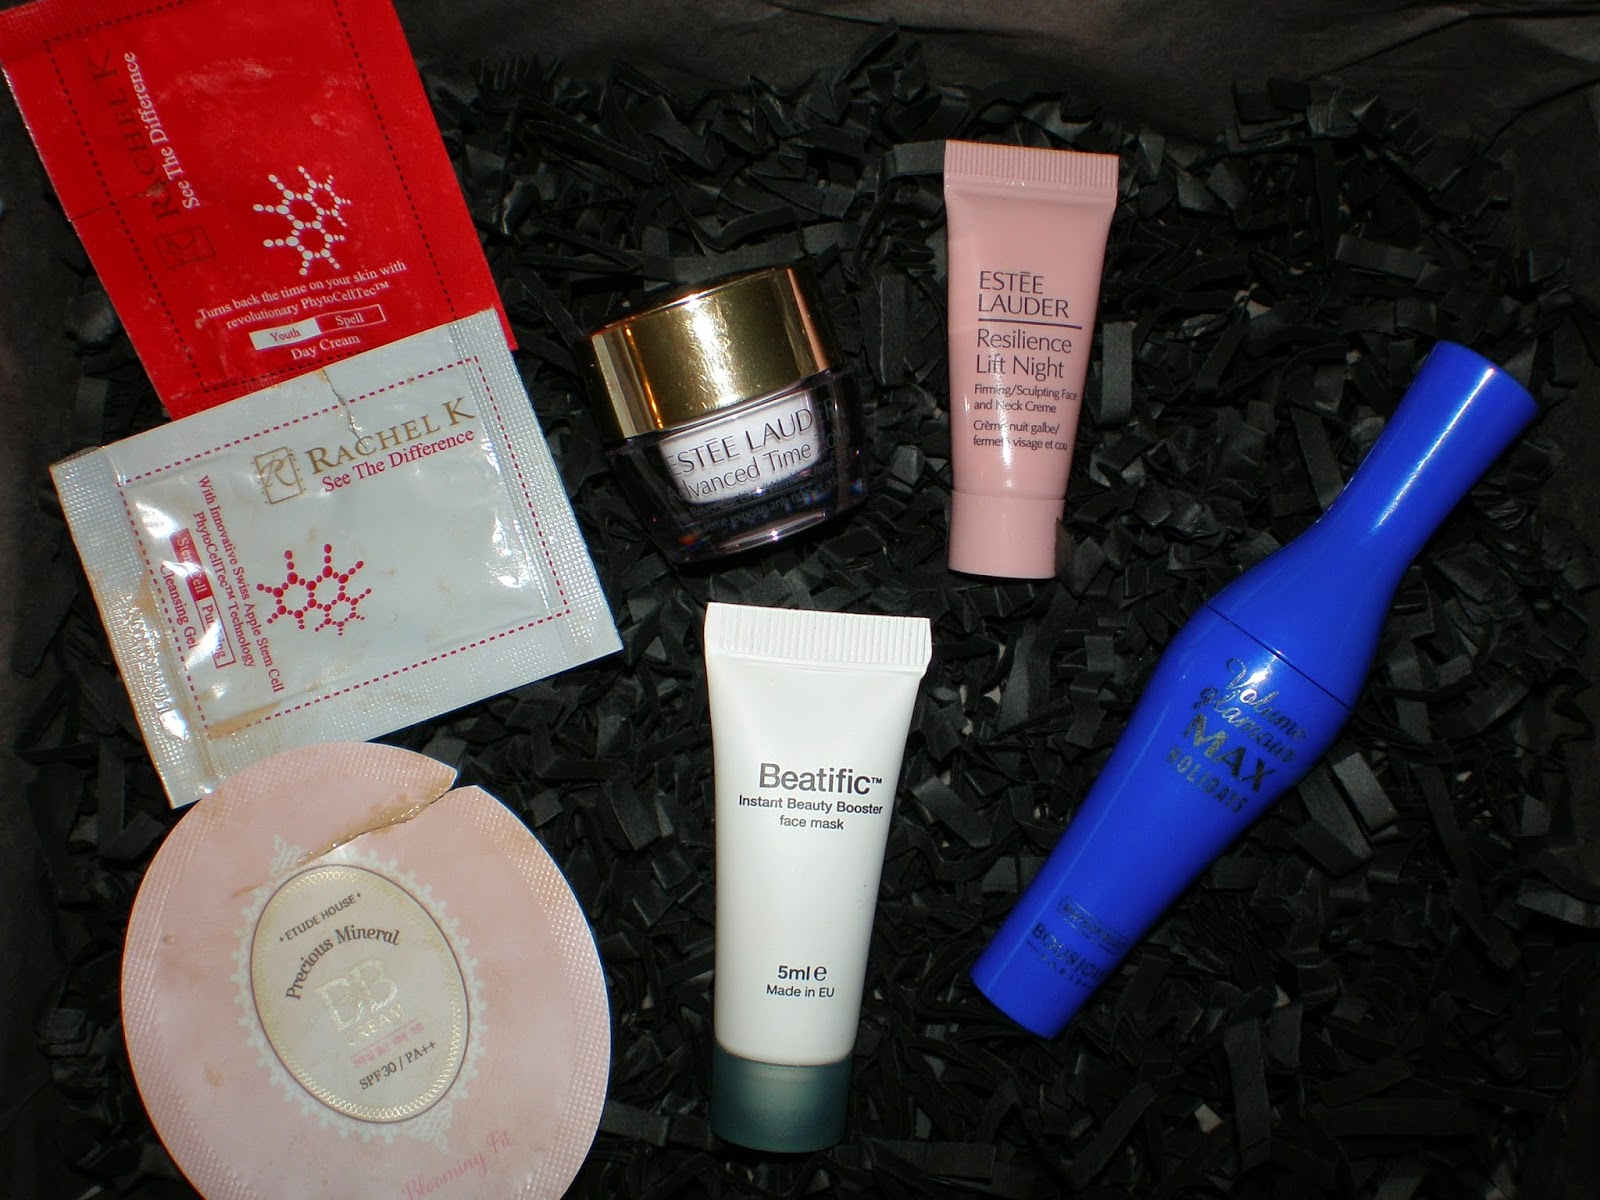 Beauty samples used during Easter 2015 holidays